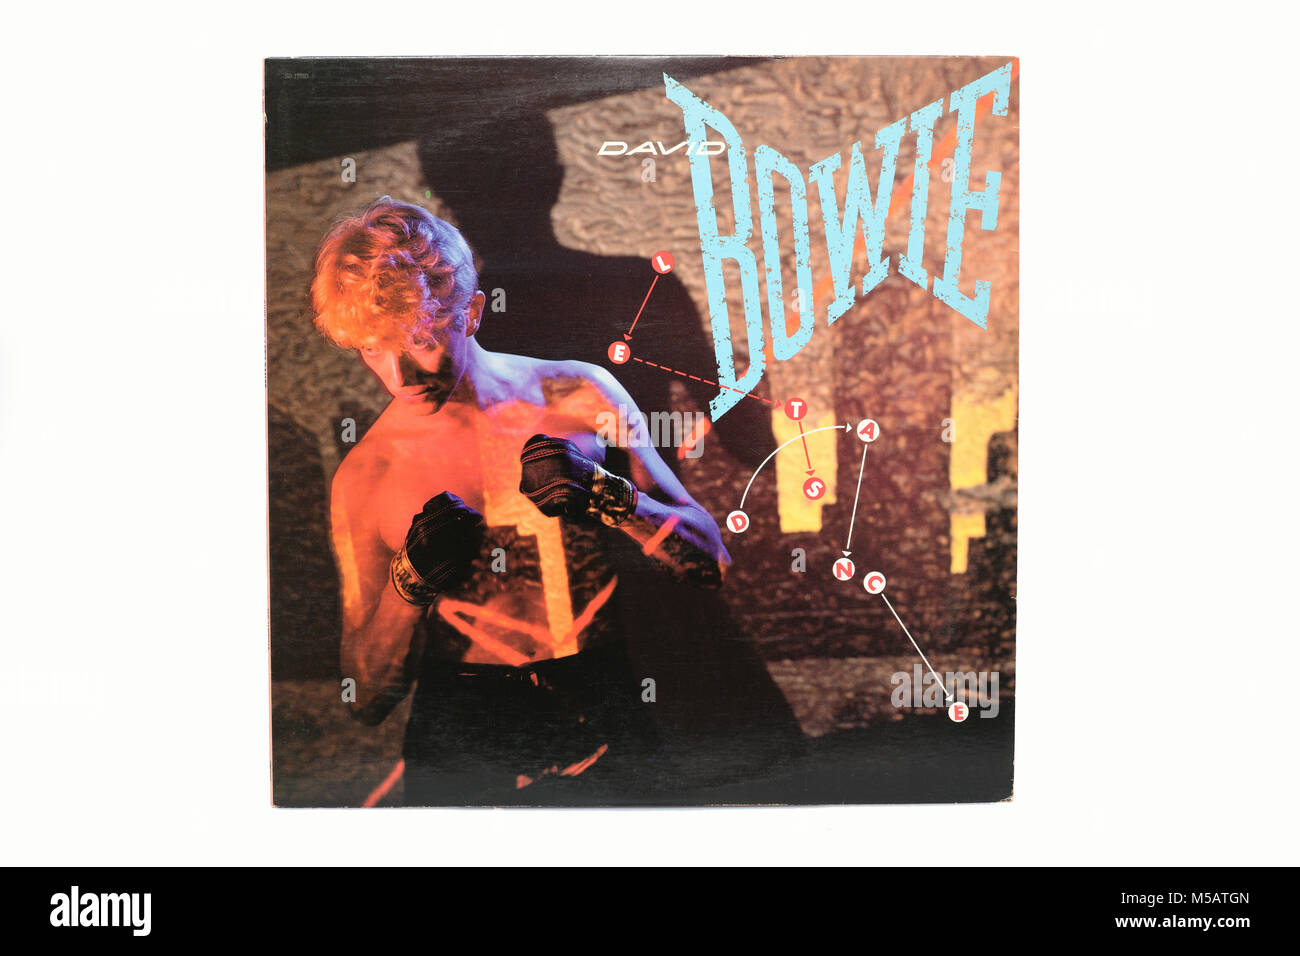 David Bowie Lets Dance LP music vinyl album cover art Stock